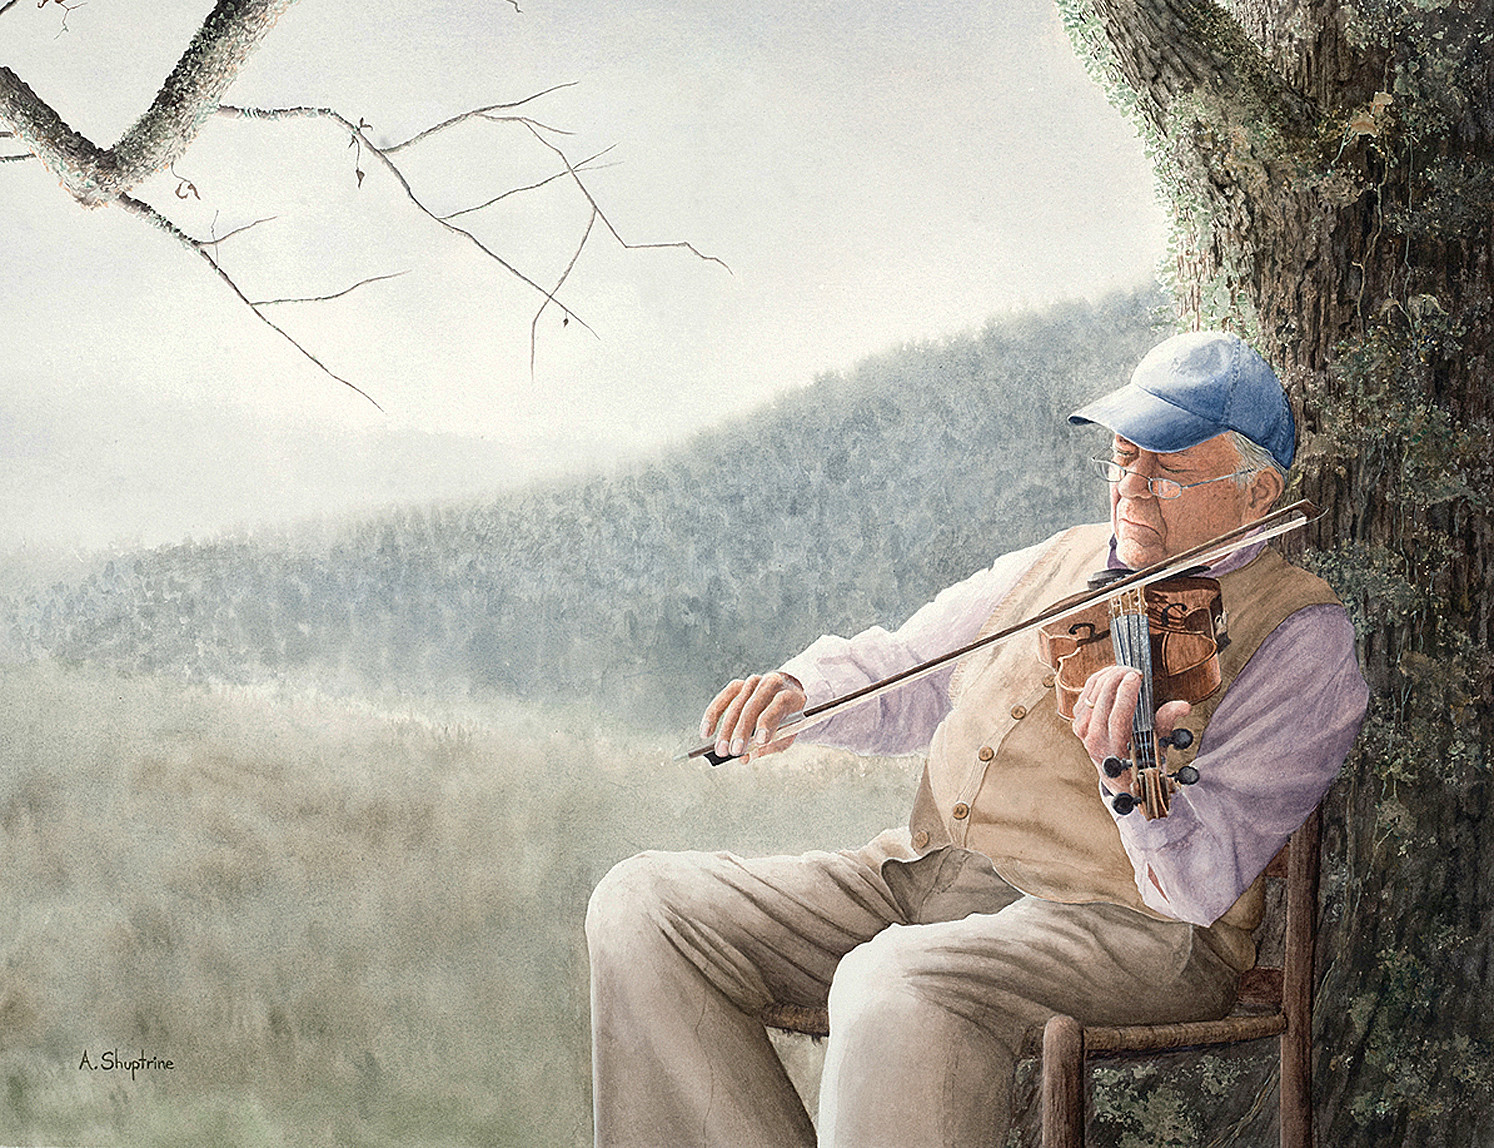 ONE OF ALAN SHUPTRINE'S paintings features an elderly man playing a fiddle. This is the perfect example of the traditions of the Appalachian people's ancestors who left their mark on their descendants. Various traditions are continued, such as traditional music, quilt making and whiskey production.